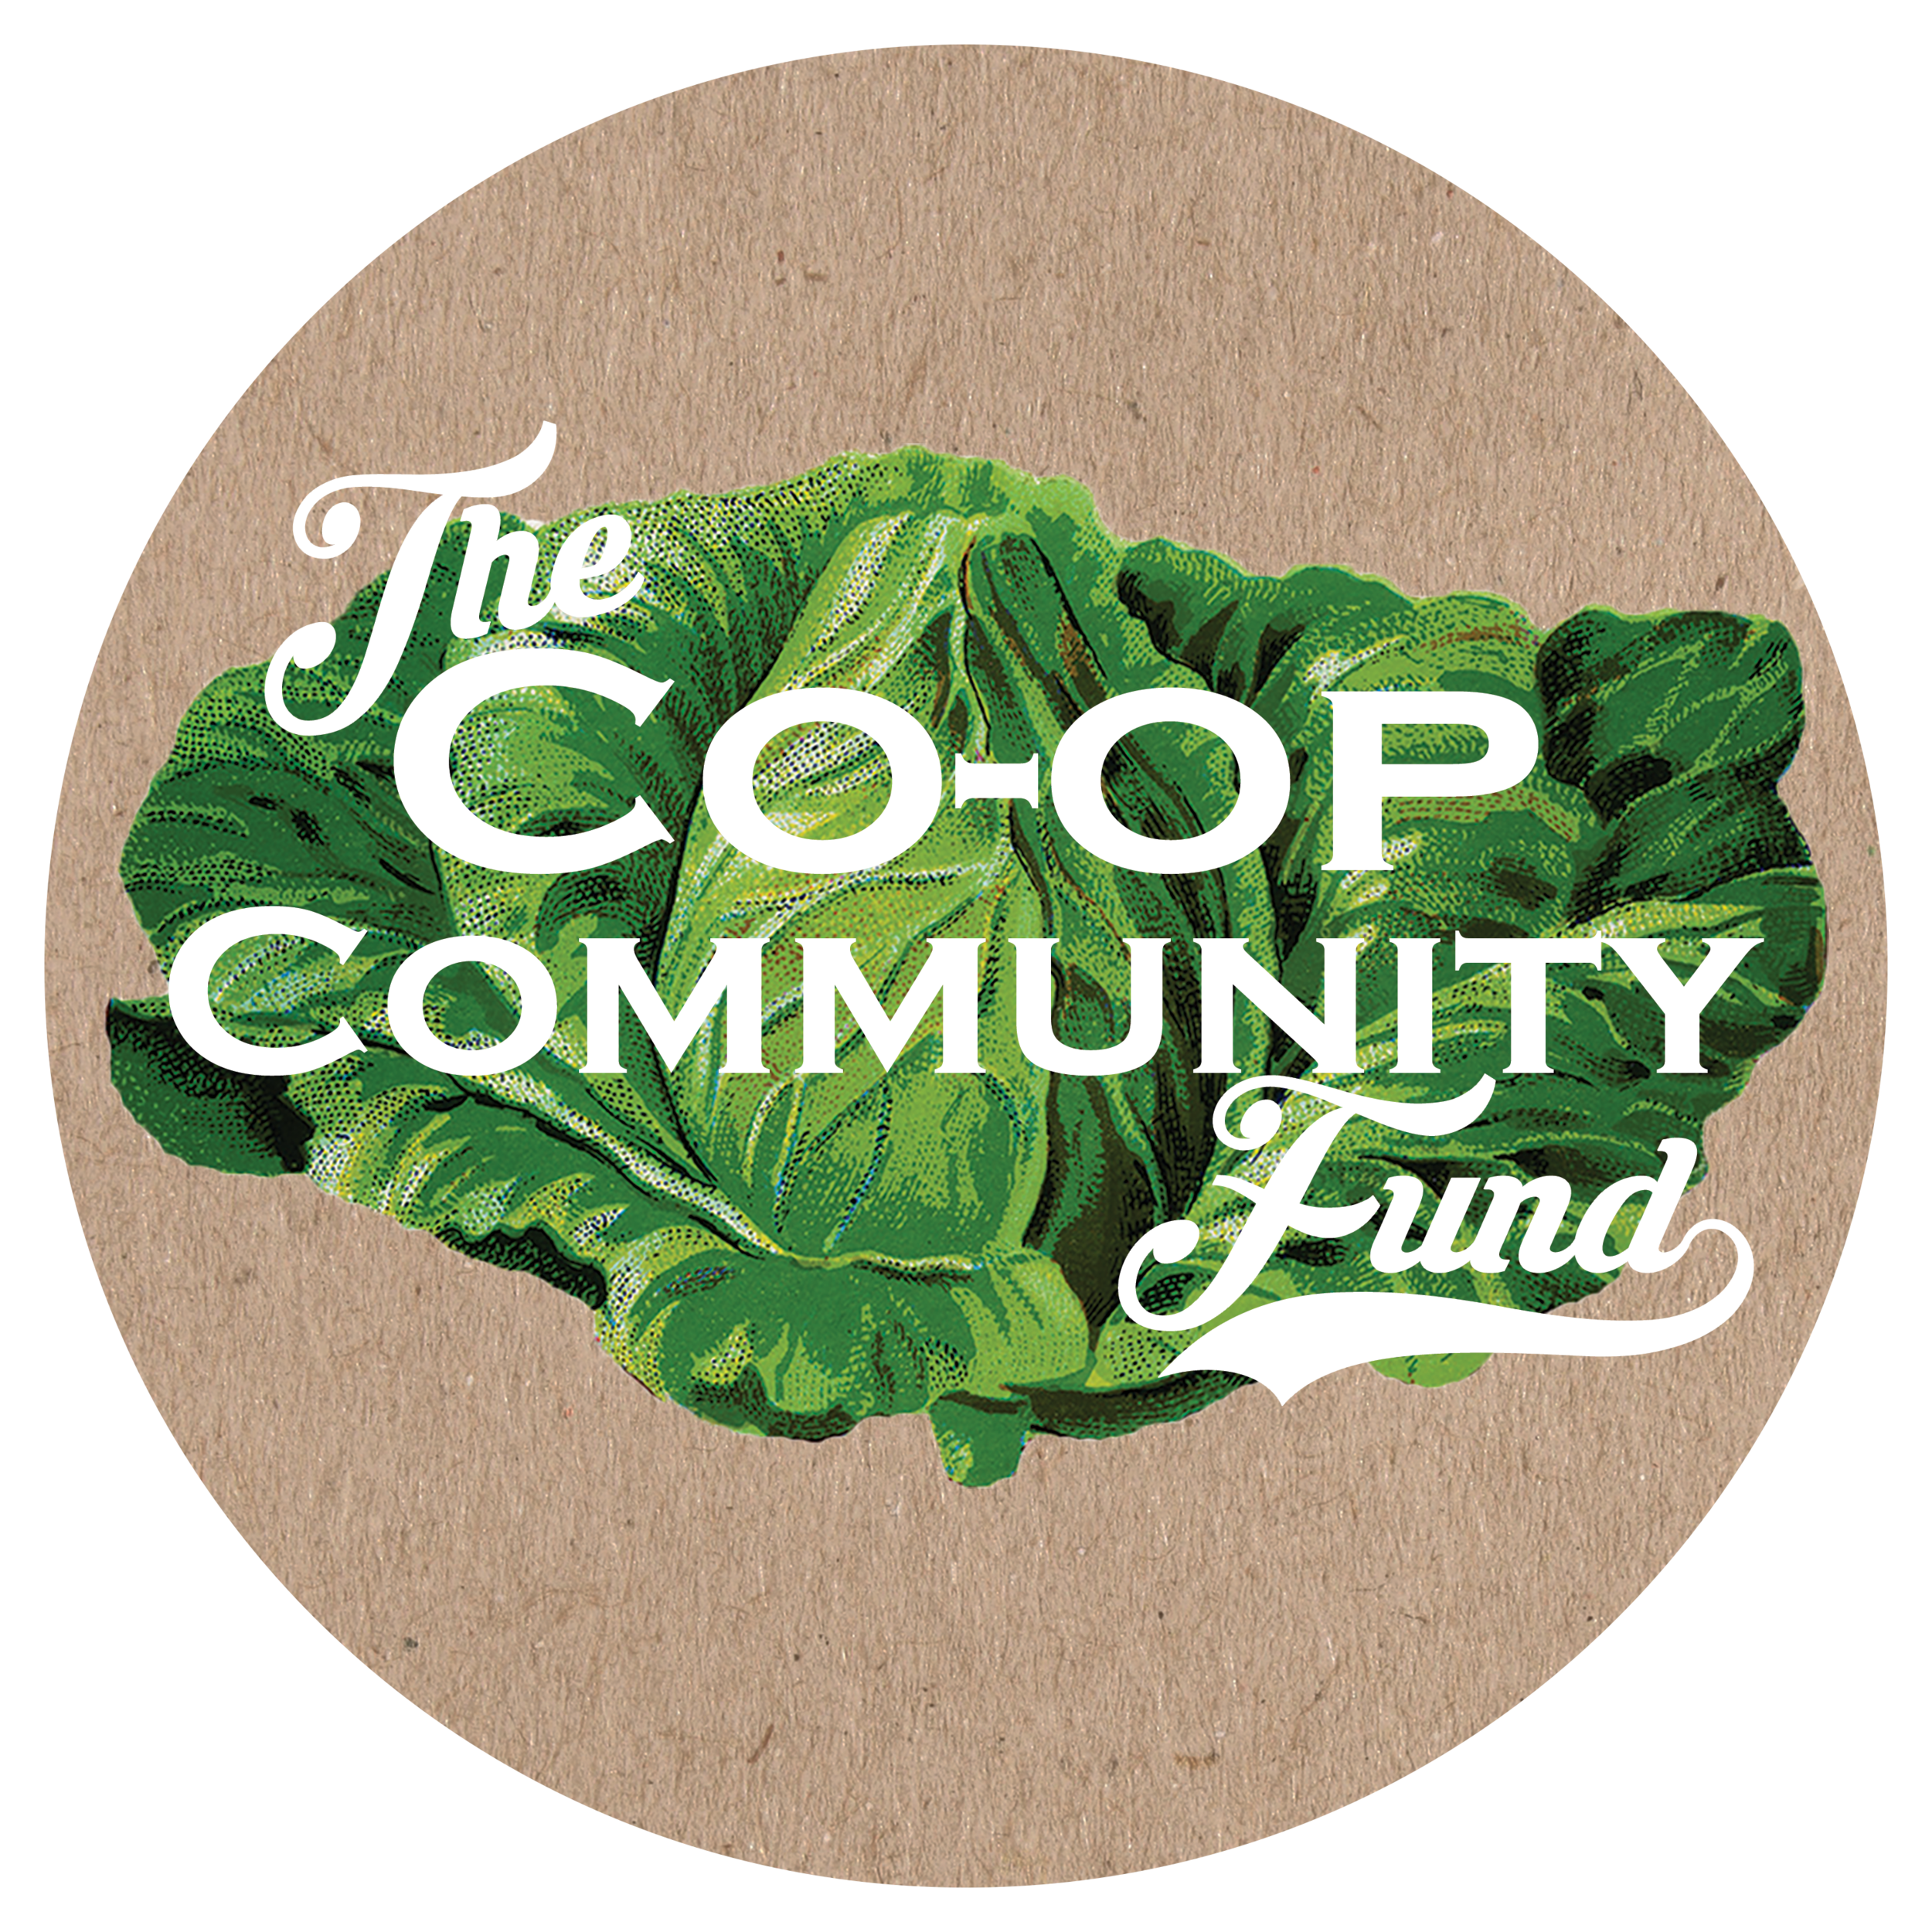 Logo - Co-op Community Fund Wood.png